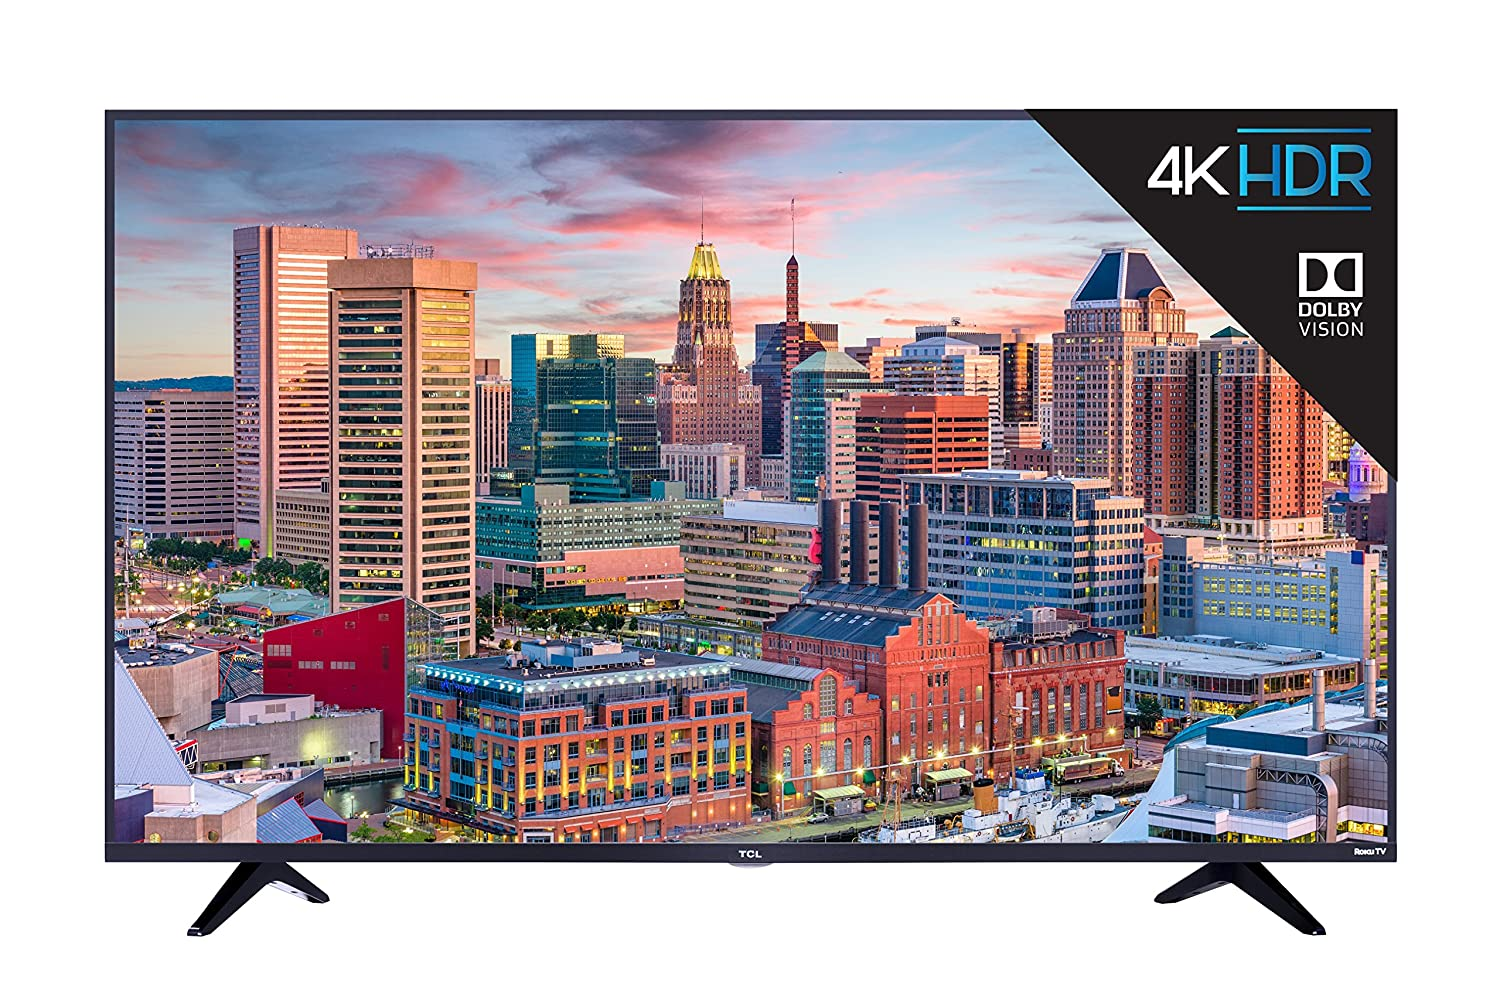 TCL 55S517 55-Inch 4K Ultra HD Roku Smart LED TV Black Friday Deals 2019